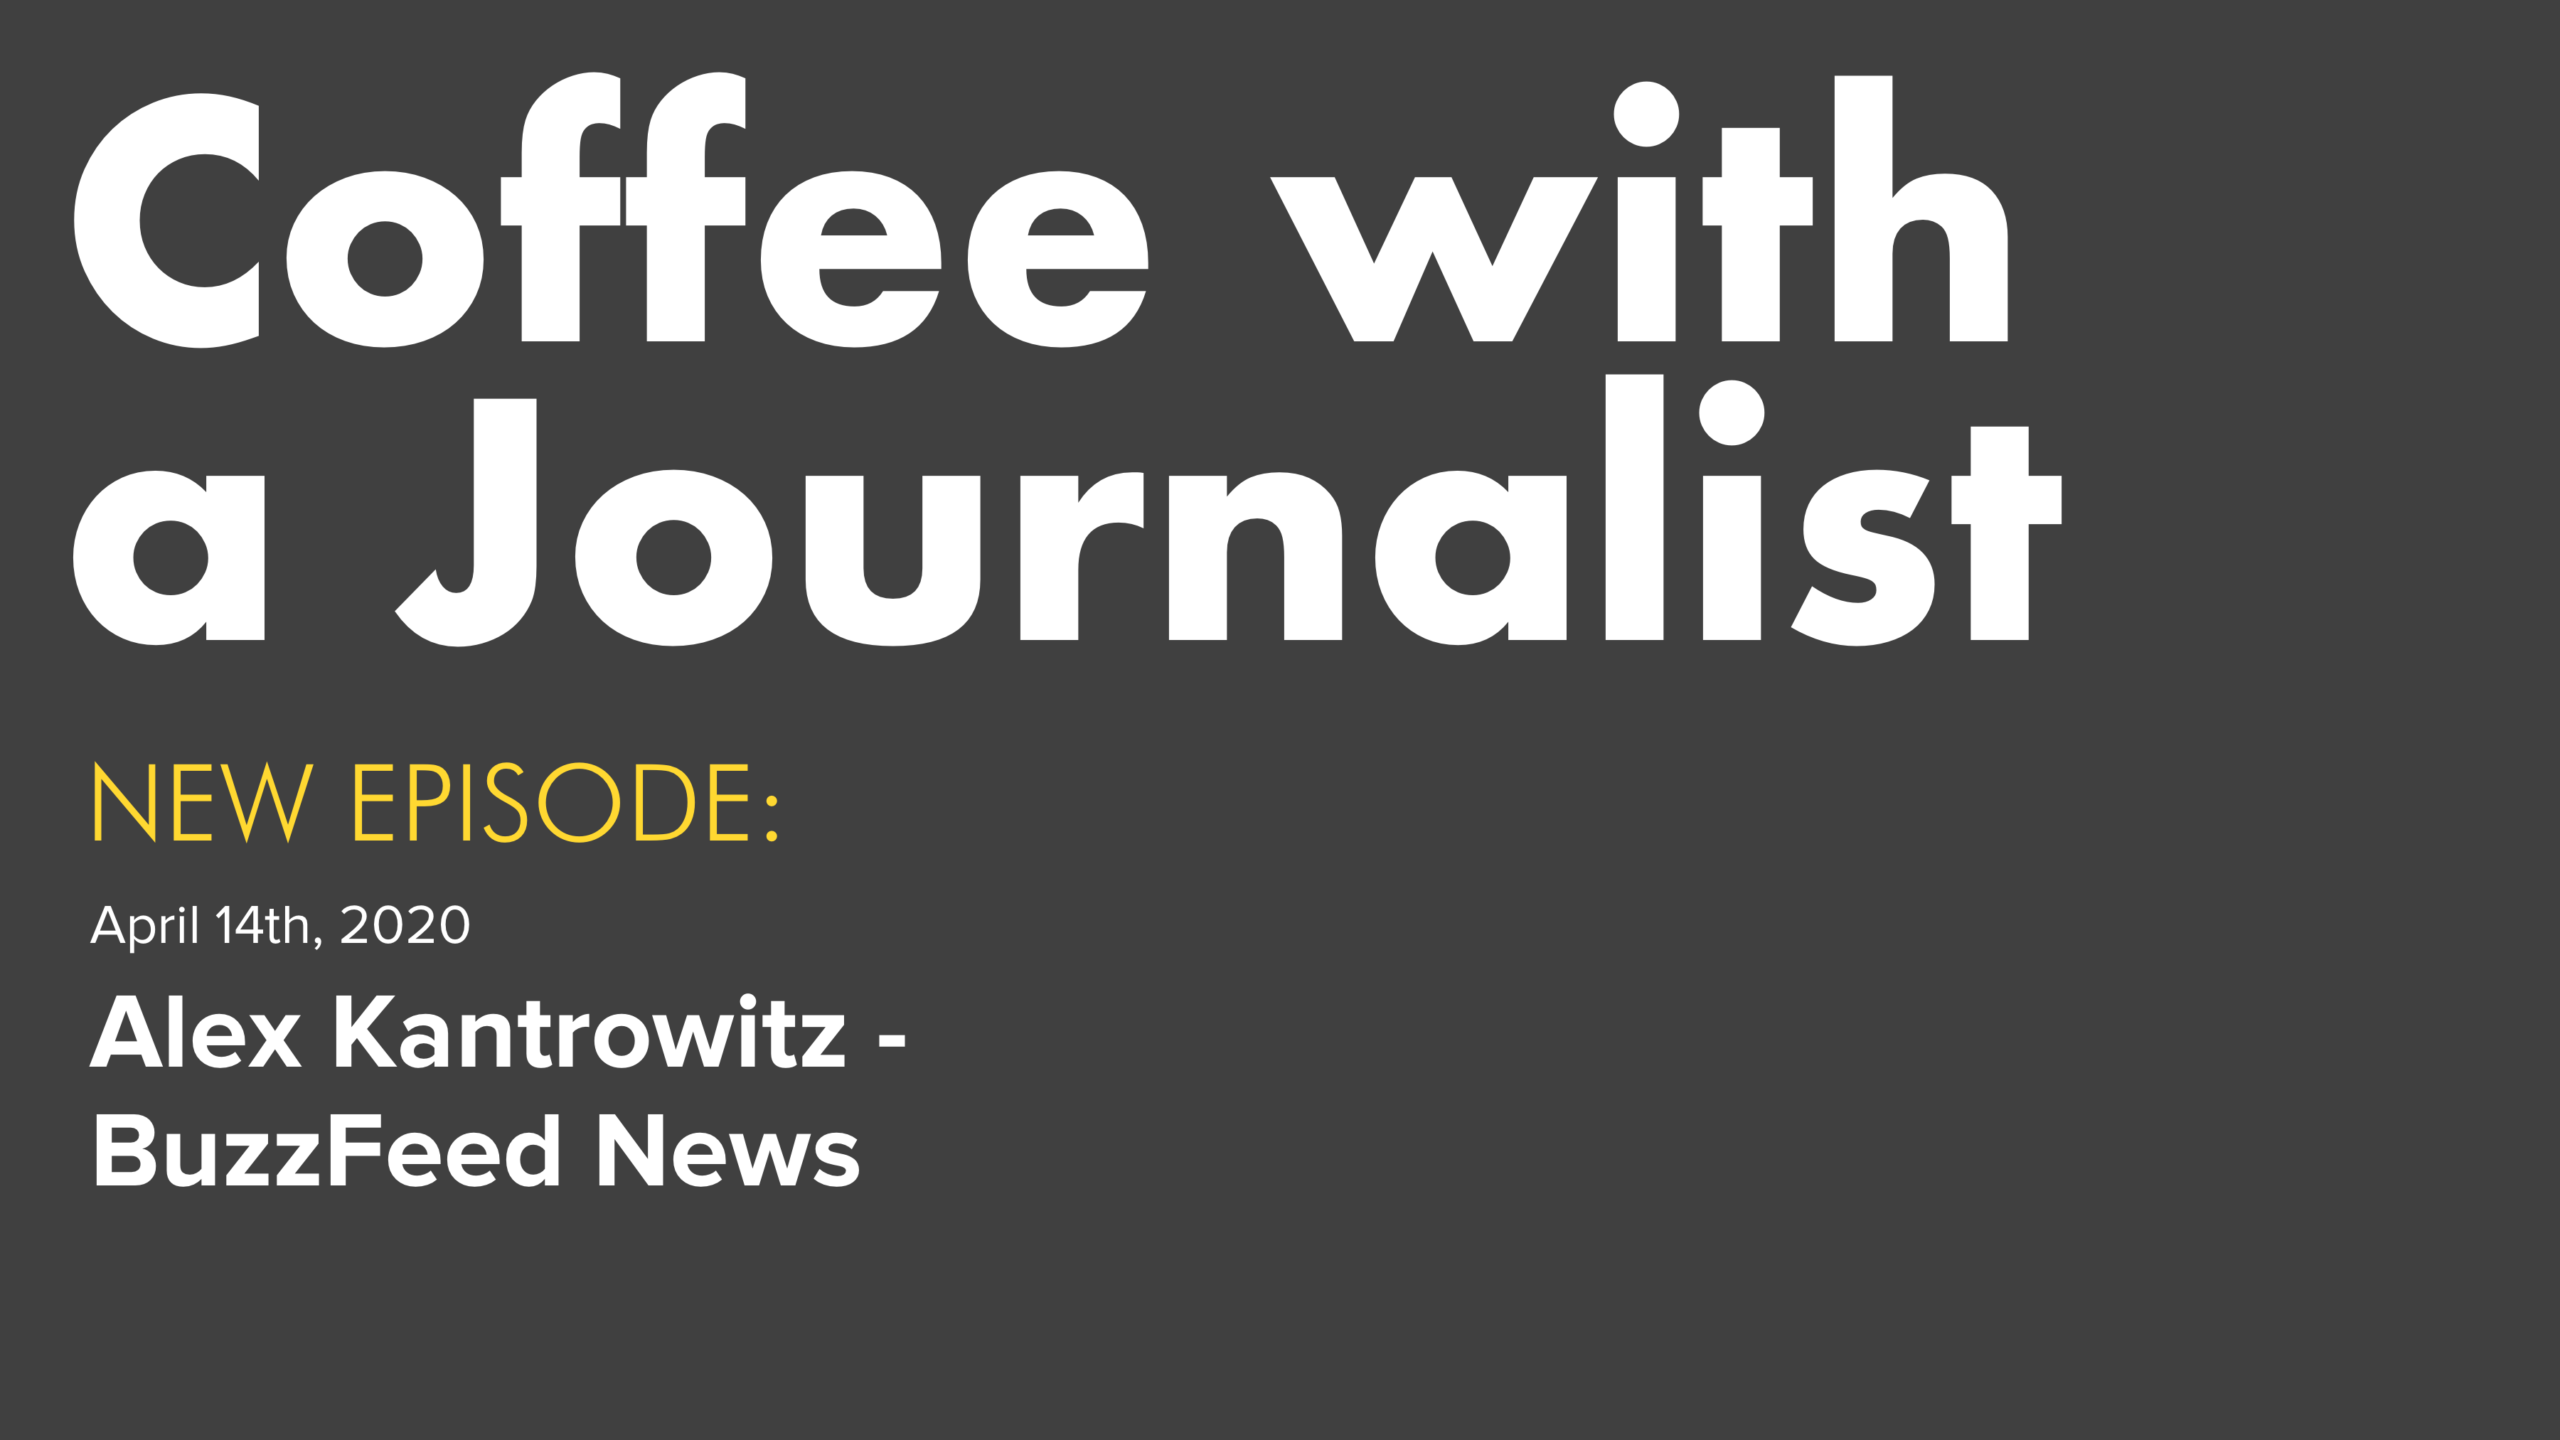 Coffee With A Journalist -Alex Kantrowitz, BuzzFeed News